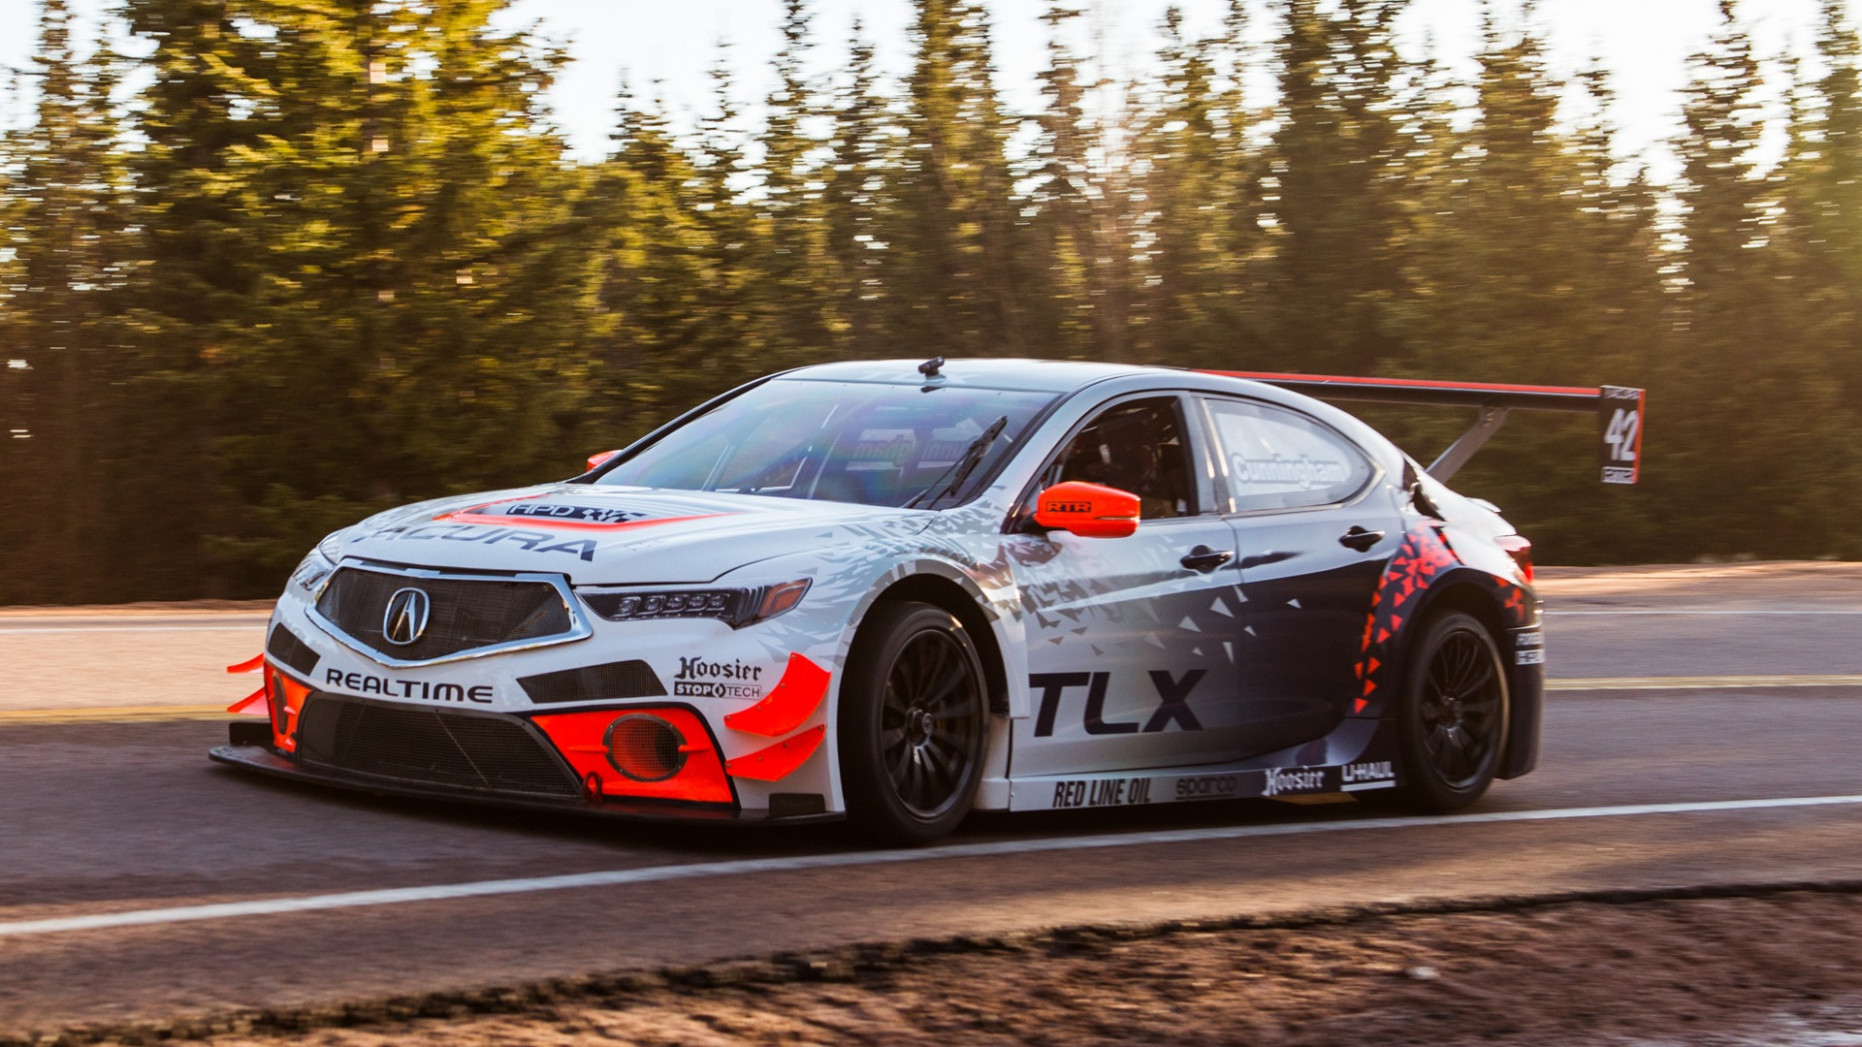 Acura is bringing a 8-horsepower TLX to 8 Pikes Peak